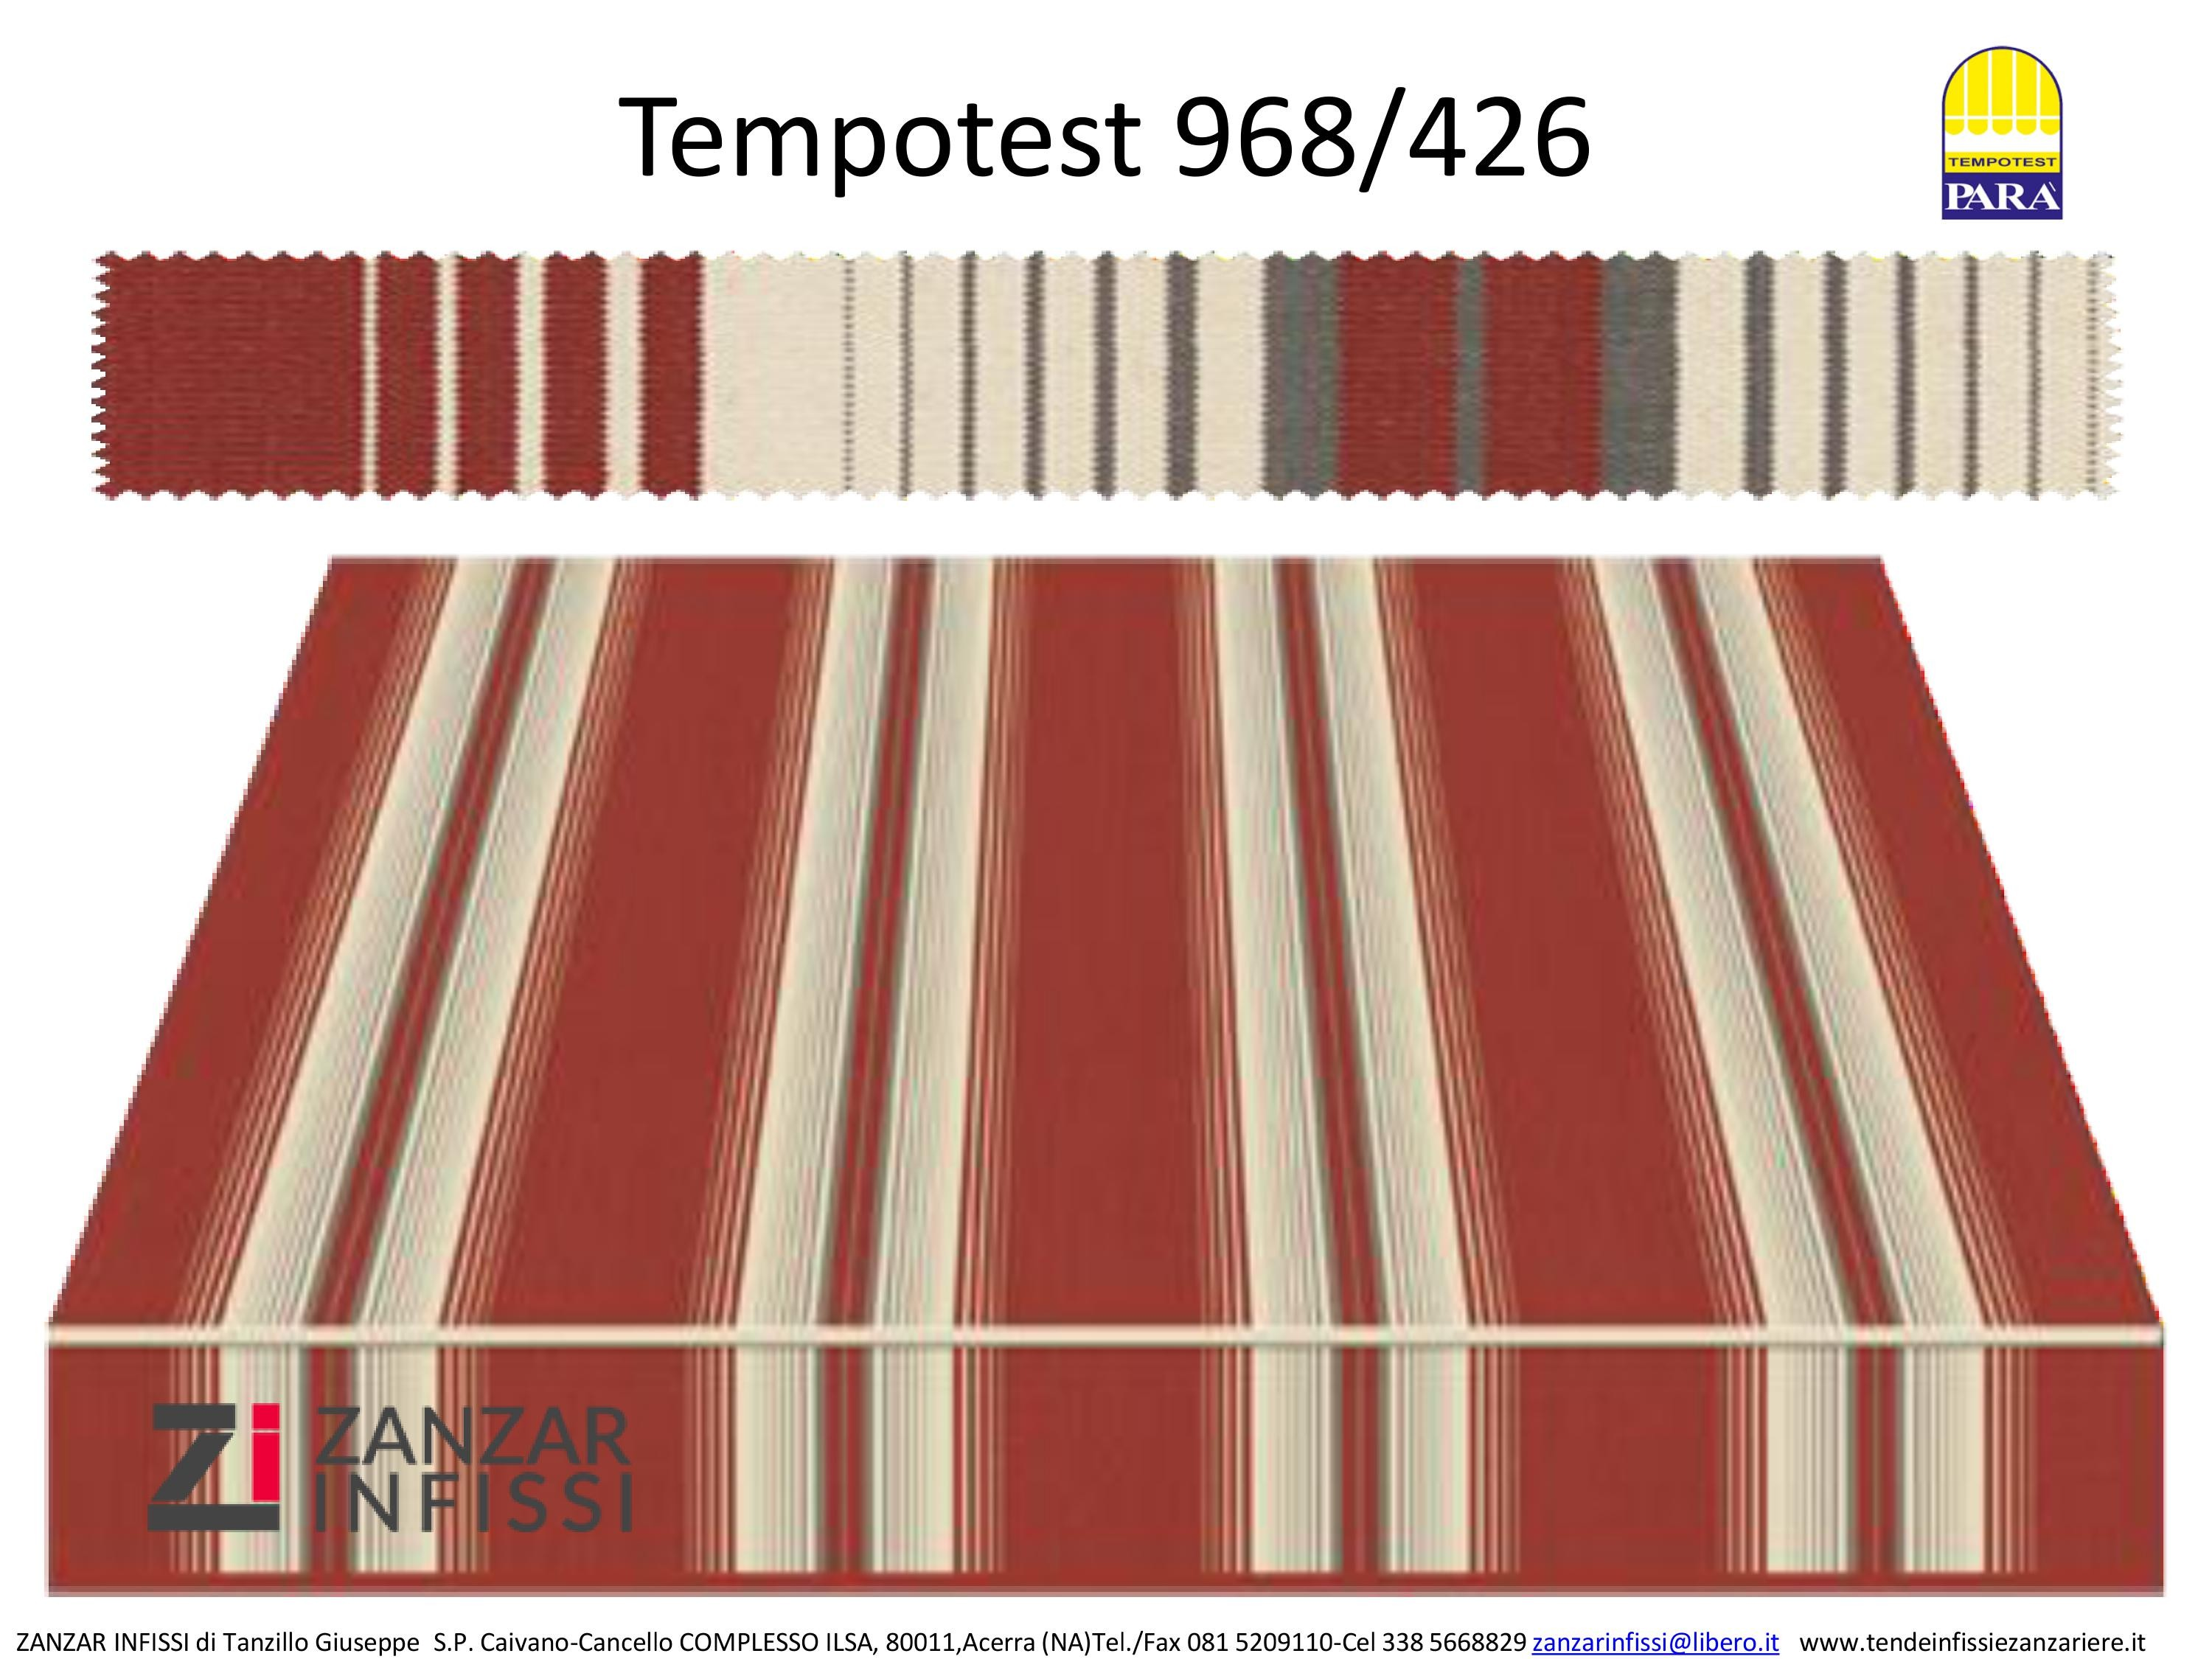 Tempotest 968/426